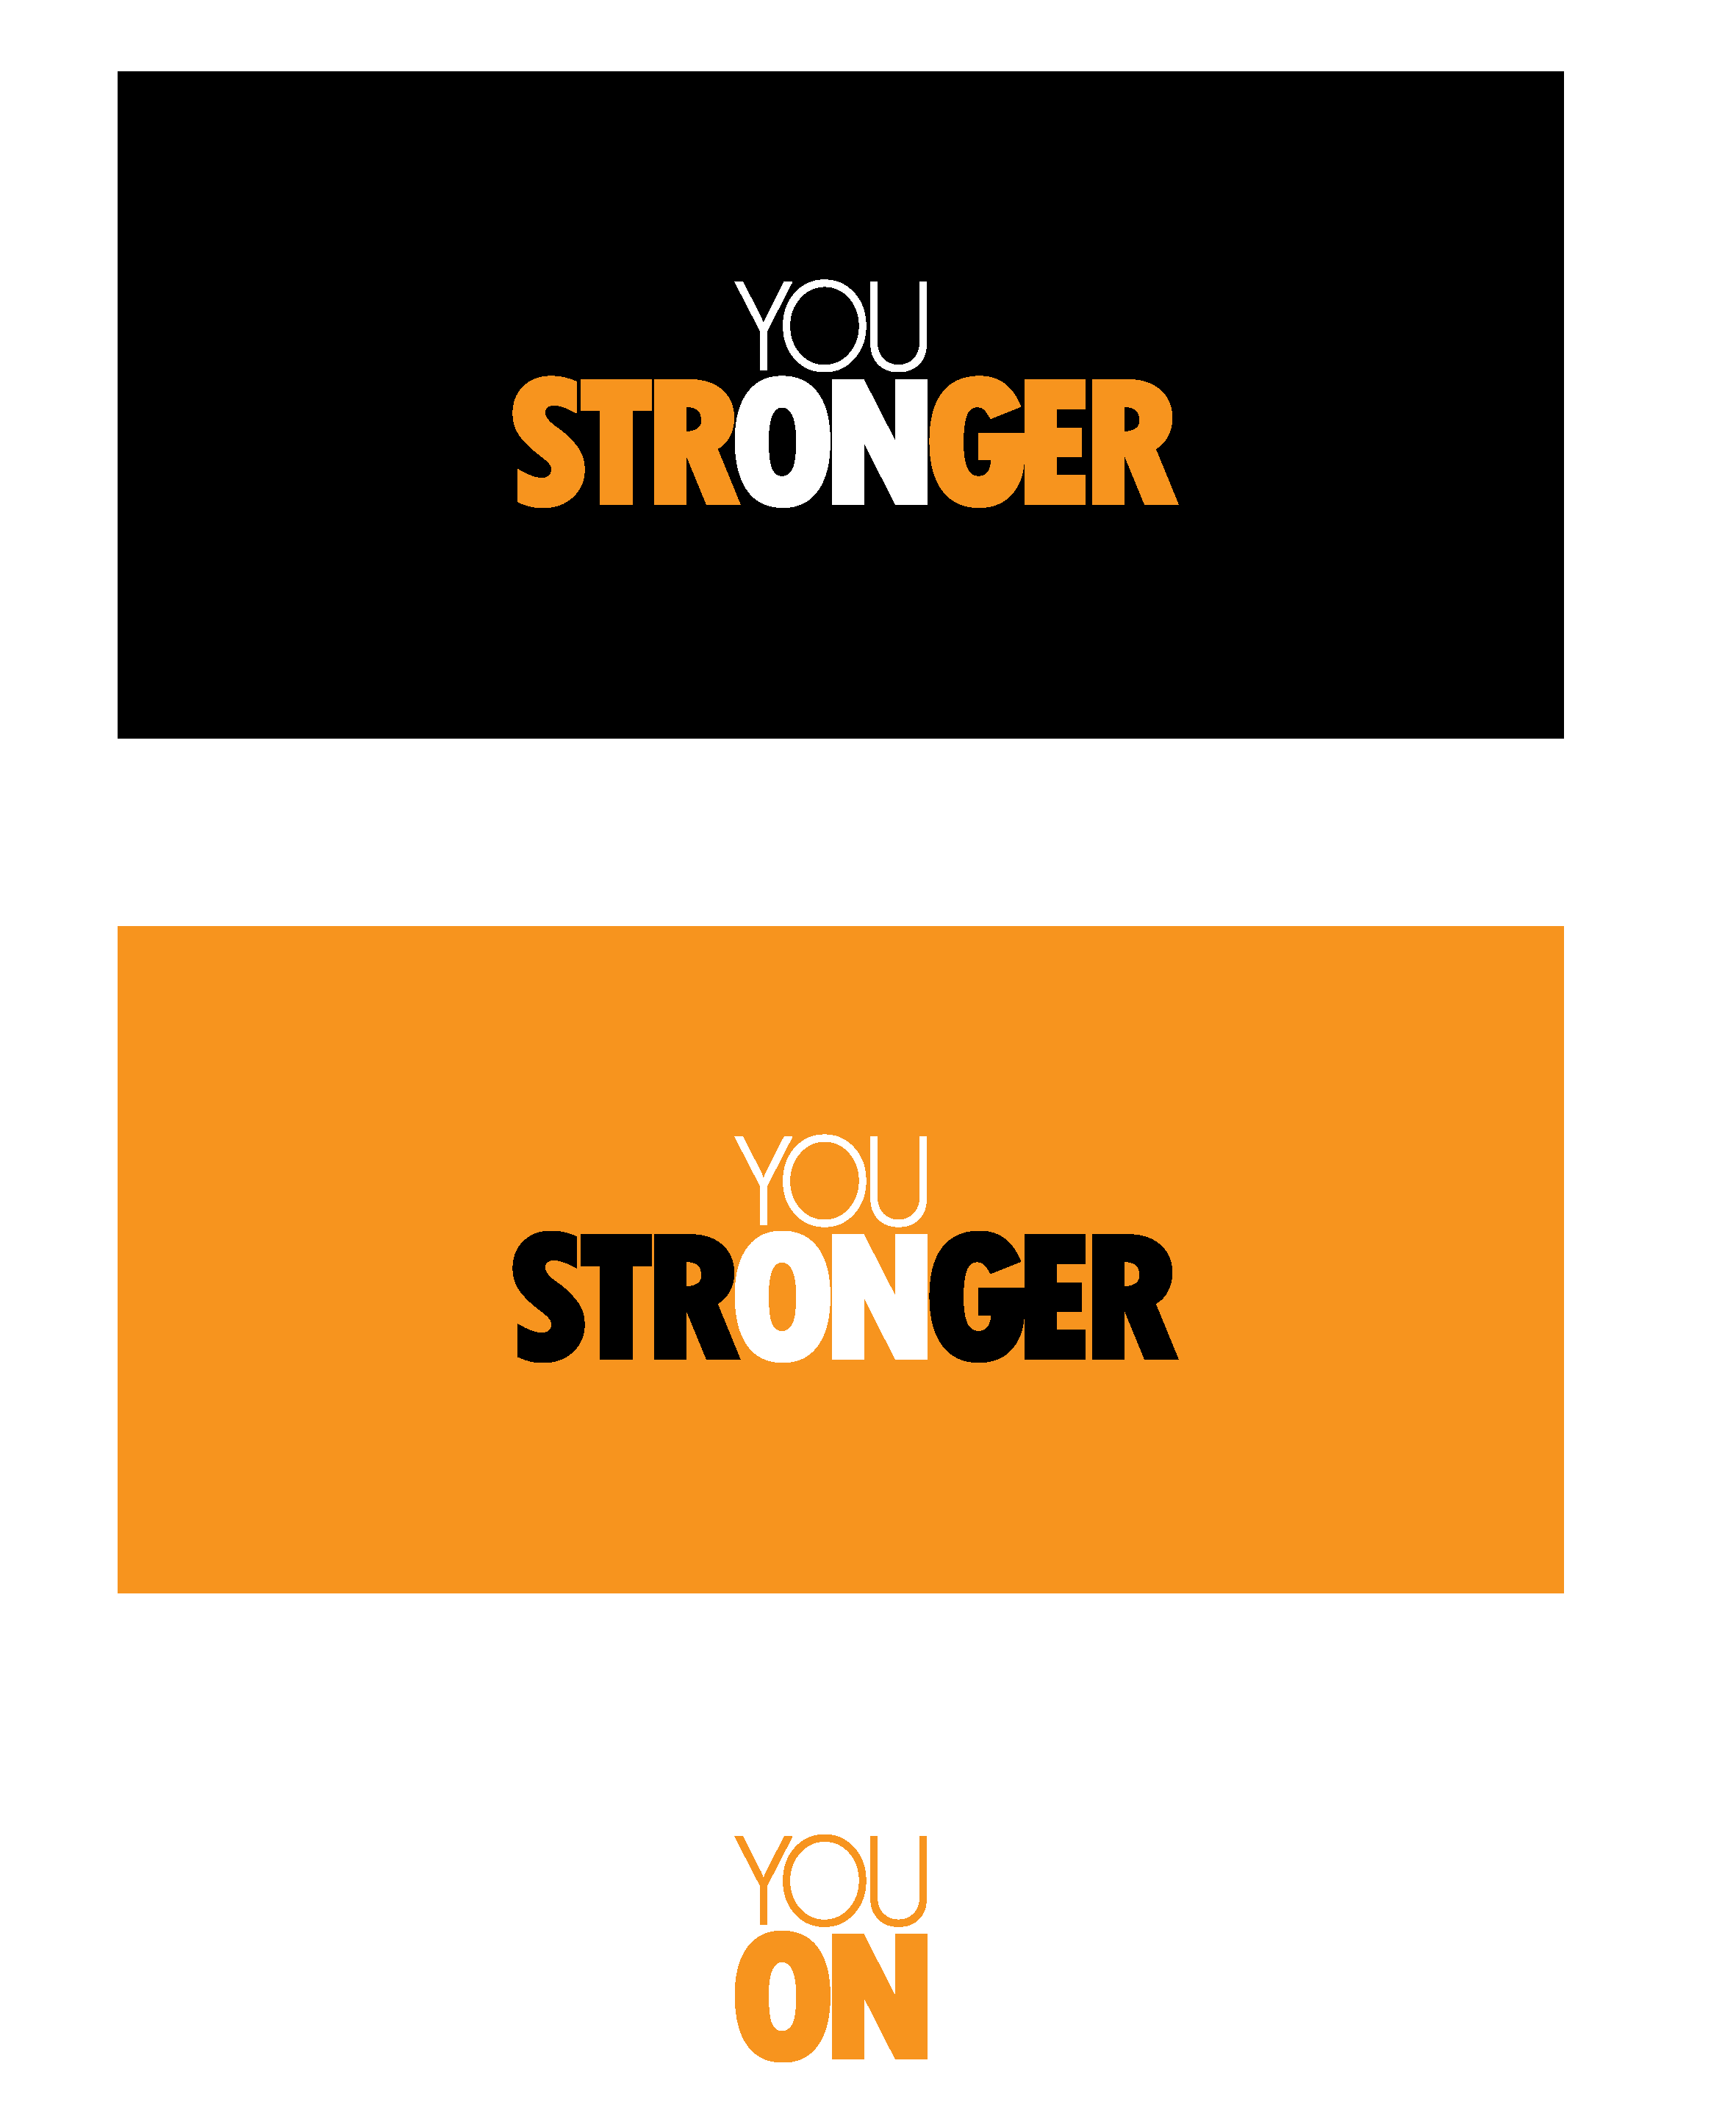 You Stronger